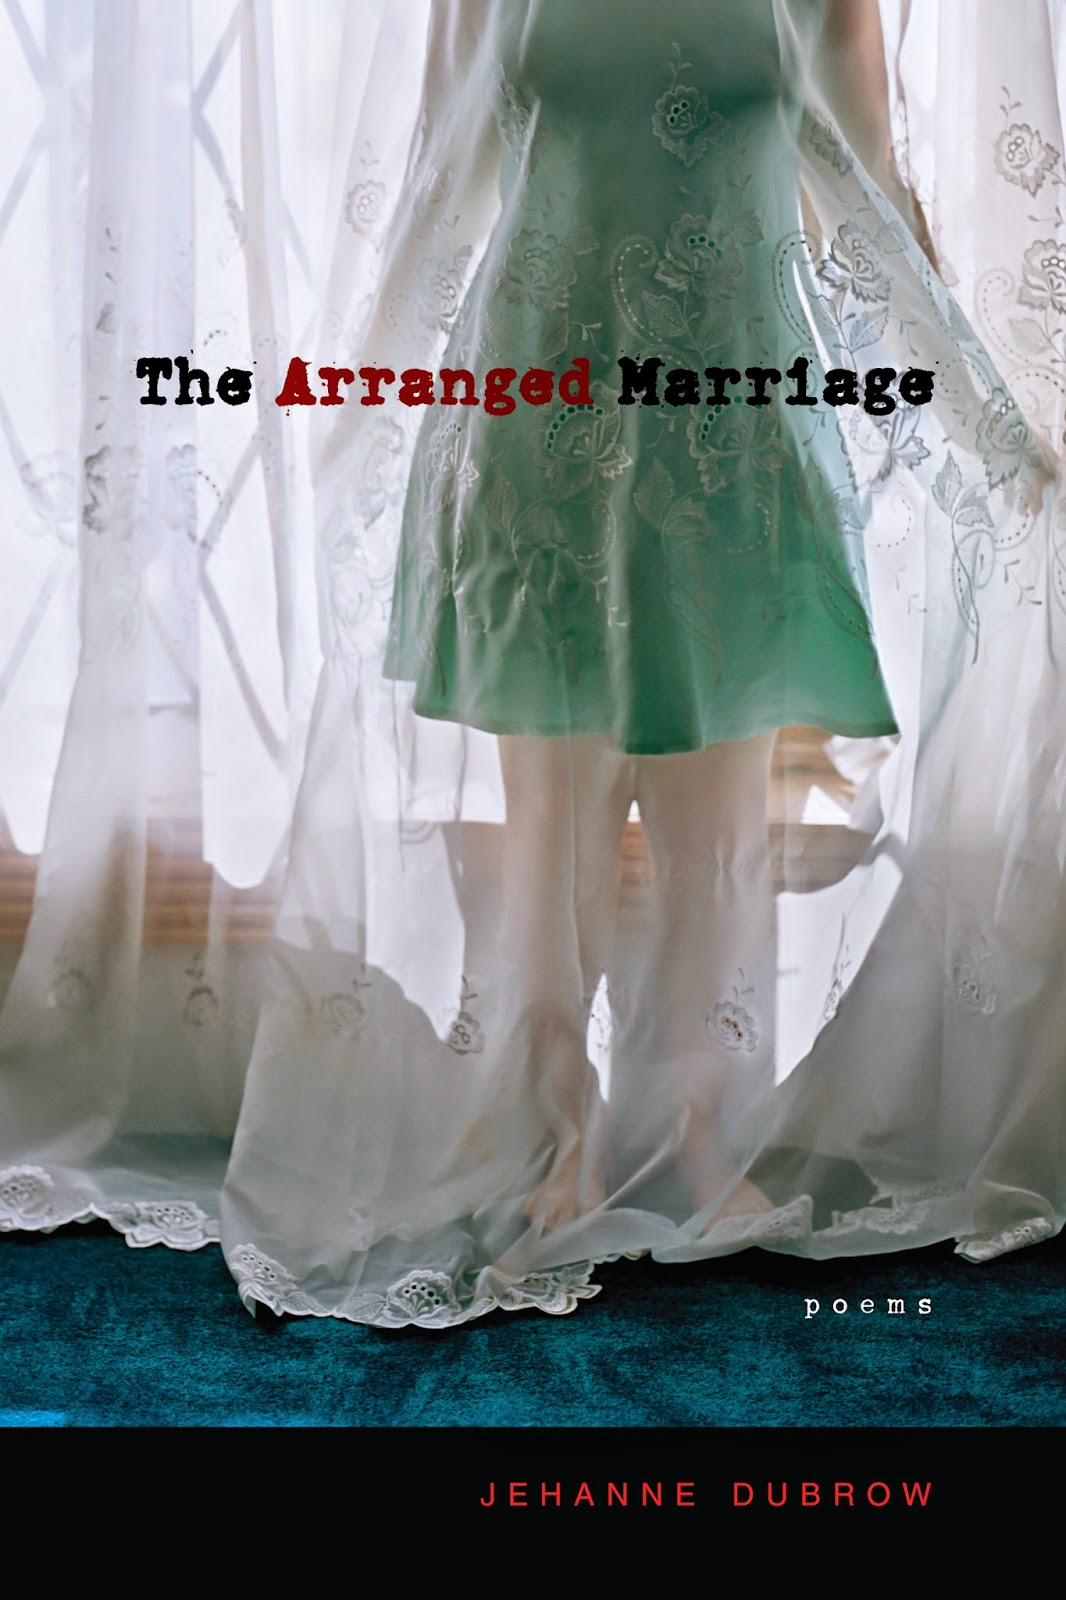 http://www.amazon.com/Arranged-Marriage-Burritt-Christiansen-Poetry/dp/0826355536/ref=sr_1_1?s=books&ie=UTF8&qid=1426171566&sr=1-1&keywords=jehanne+dubrow